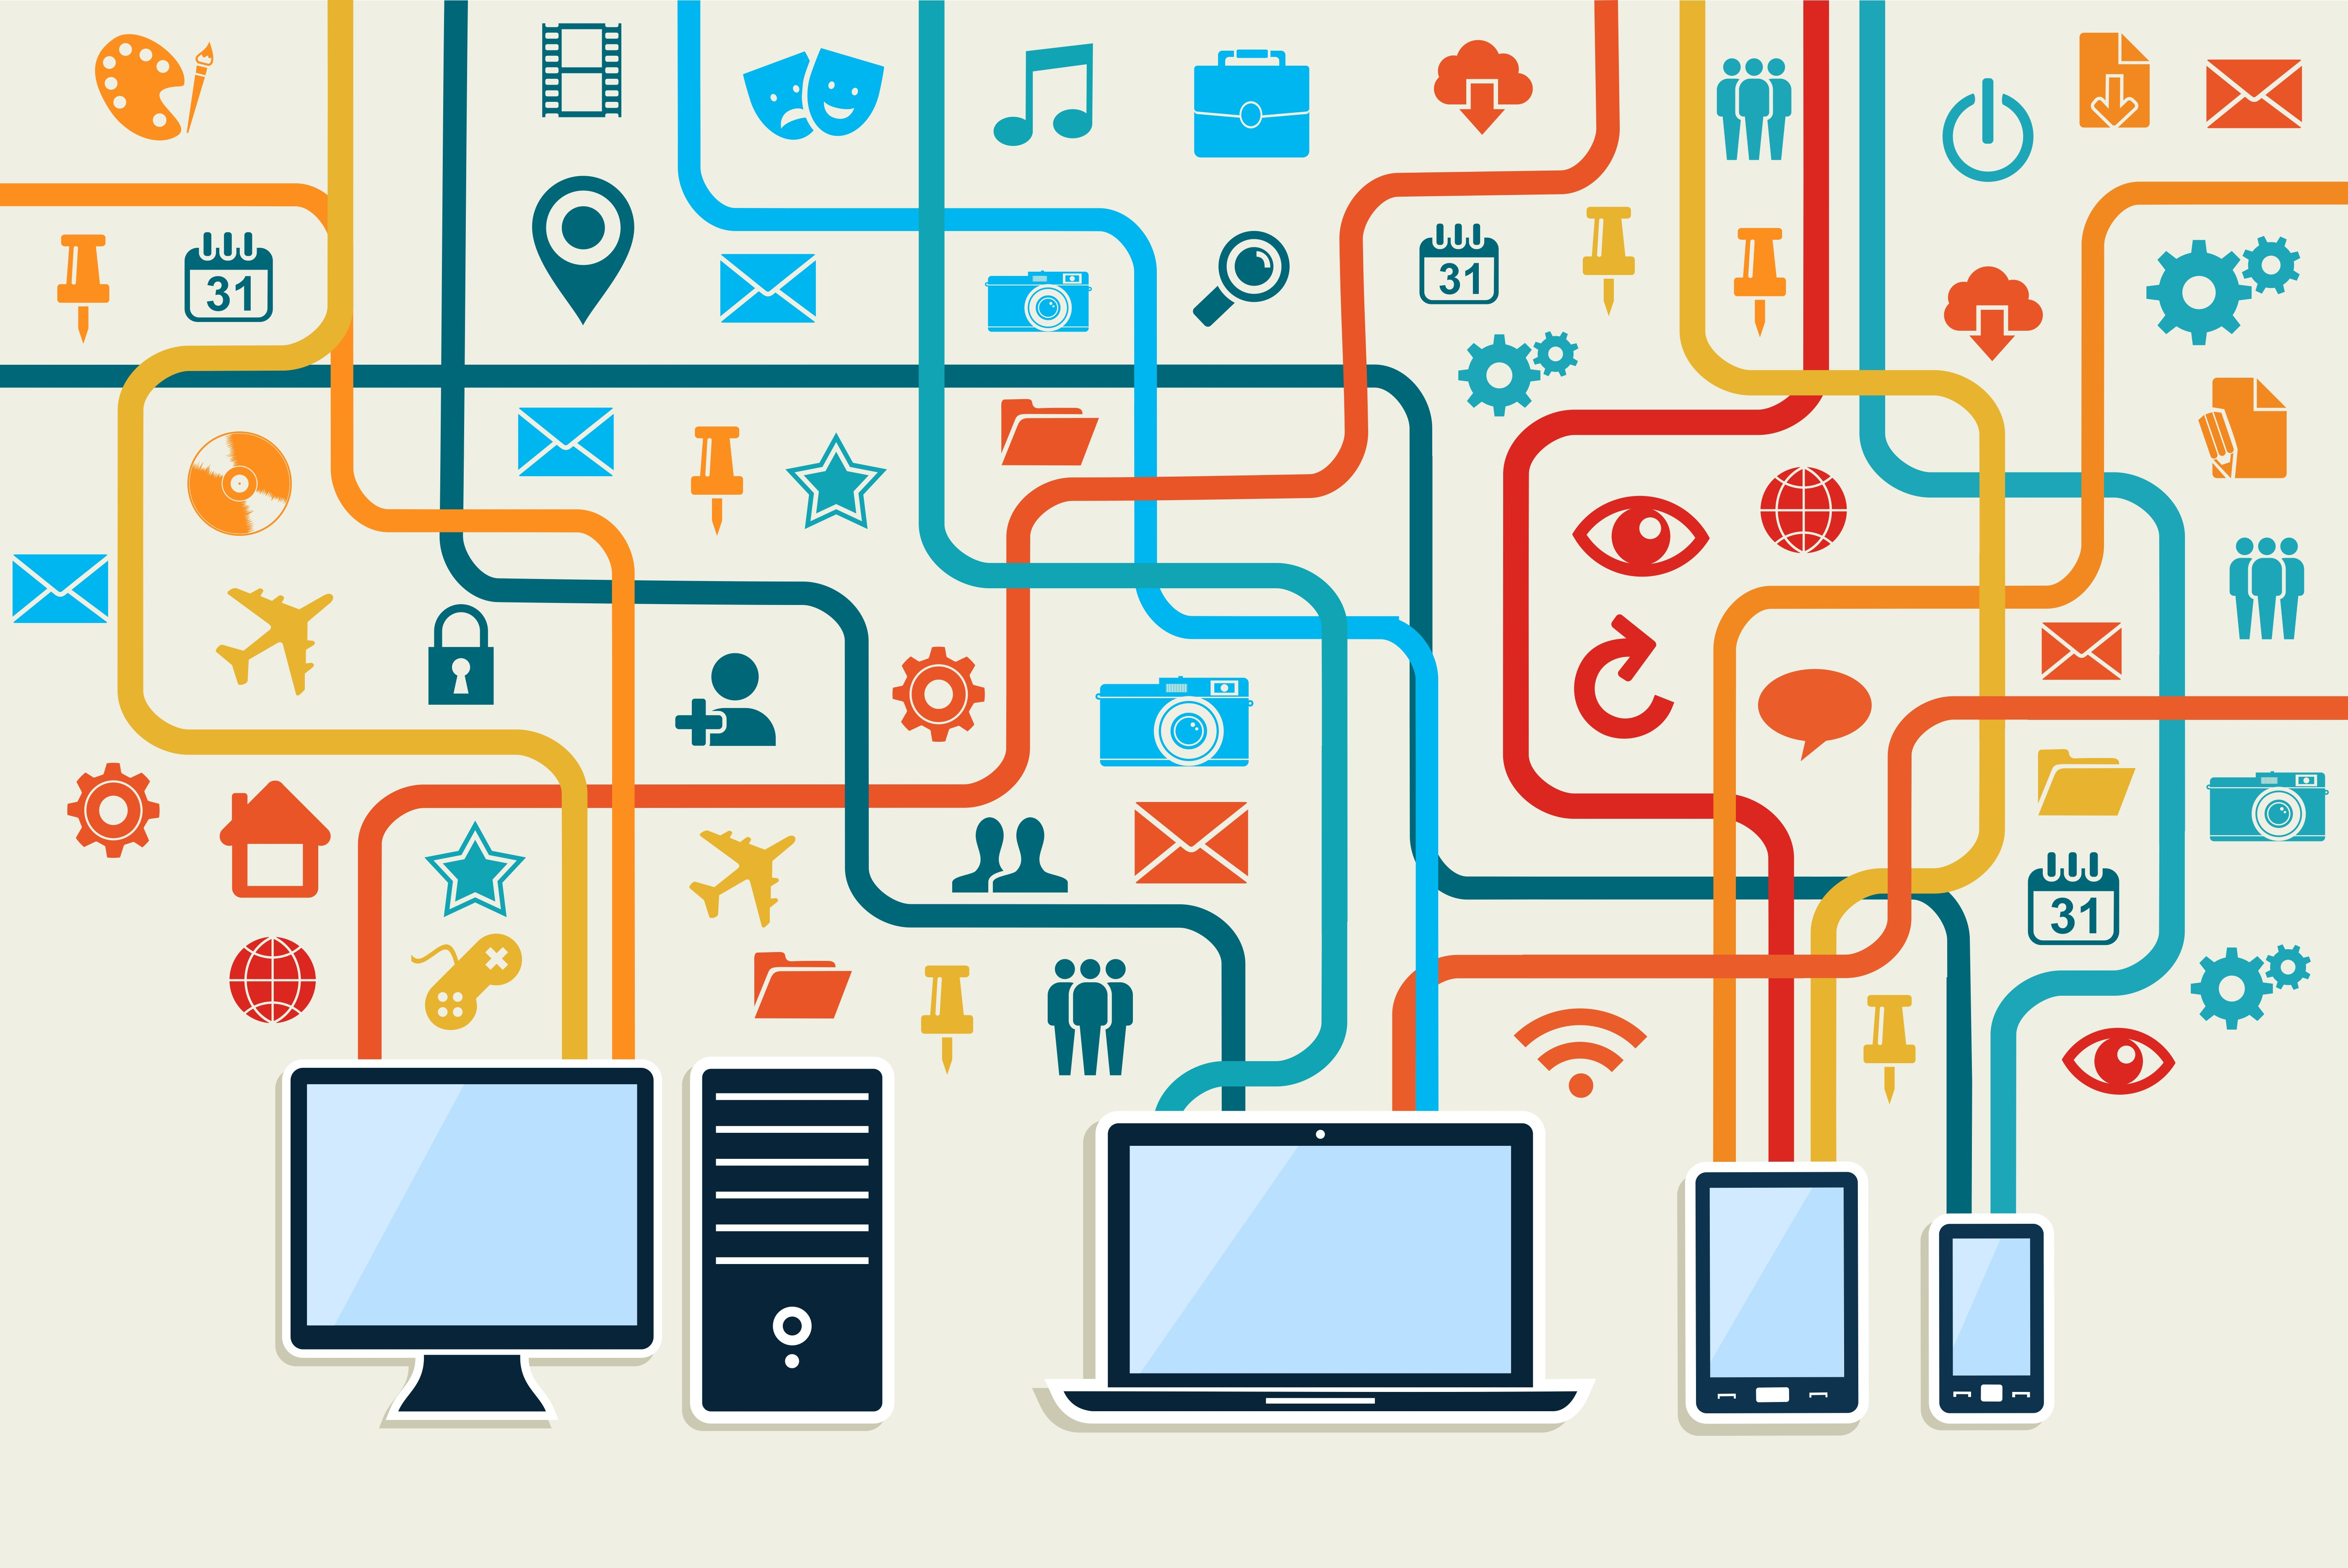 Using the Collaborative Security Approach to Address Internet of Things Security Challenges